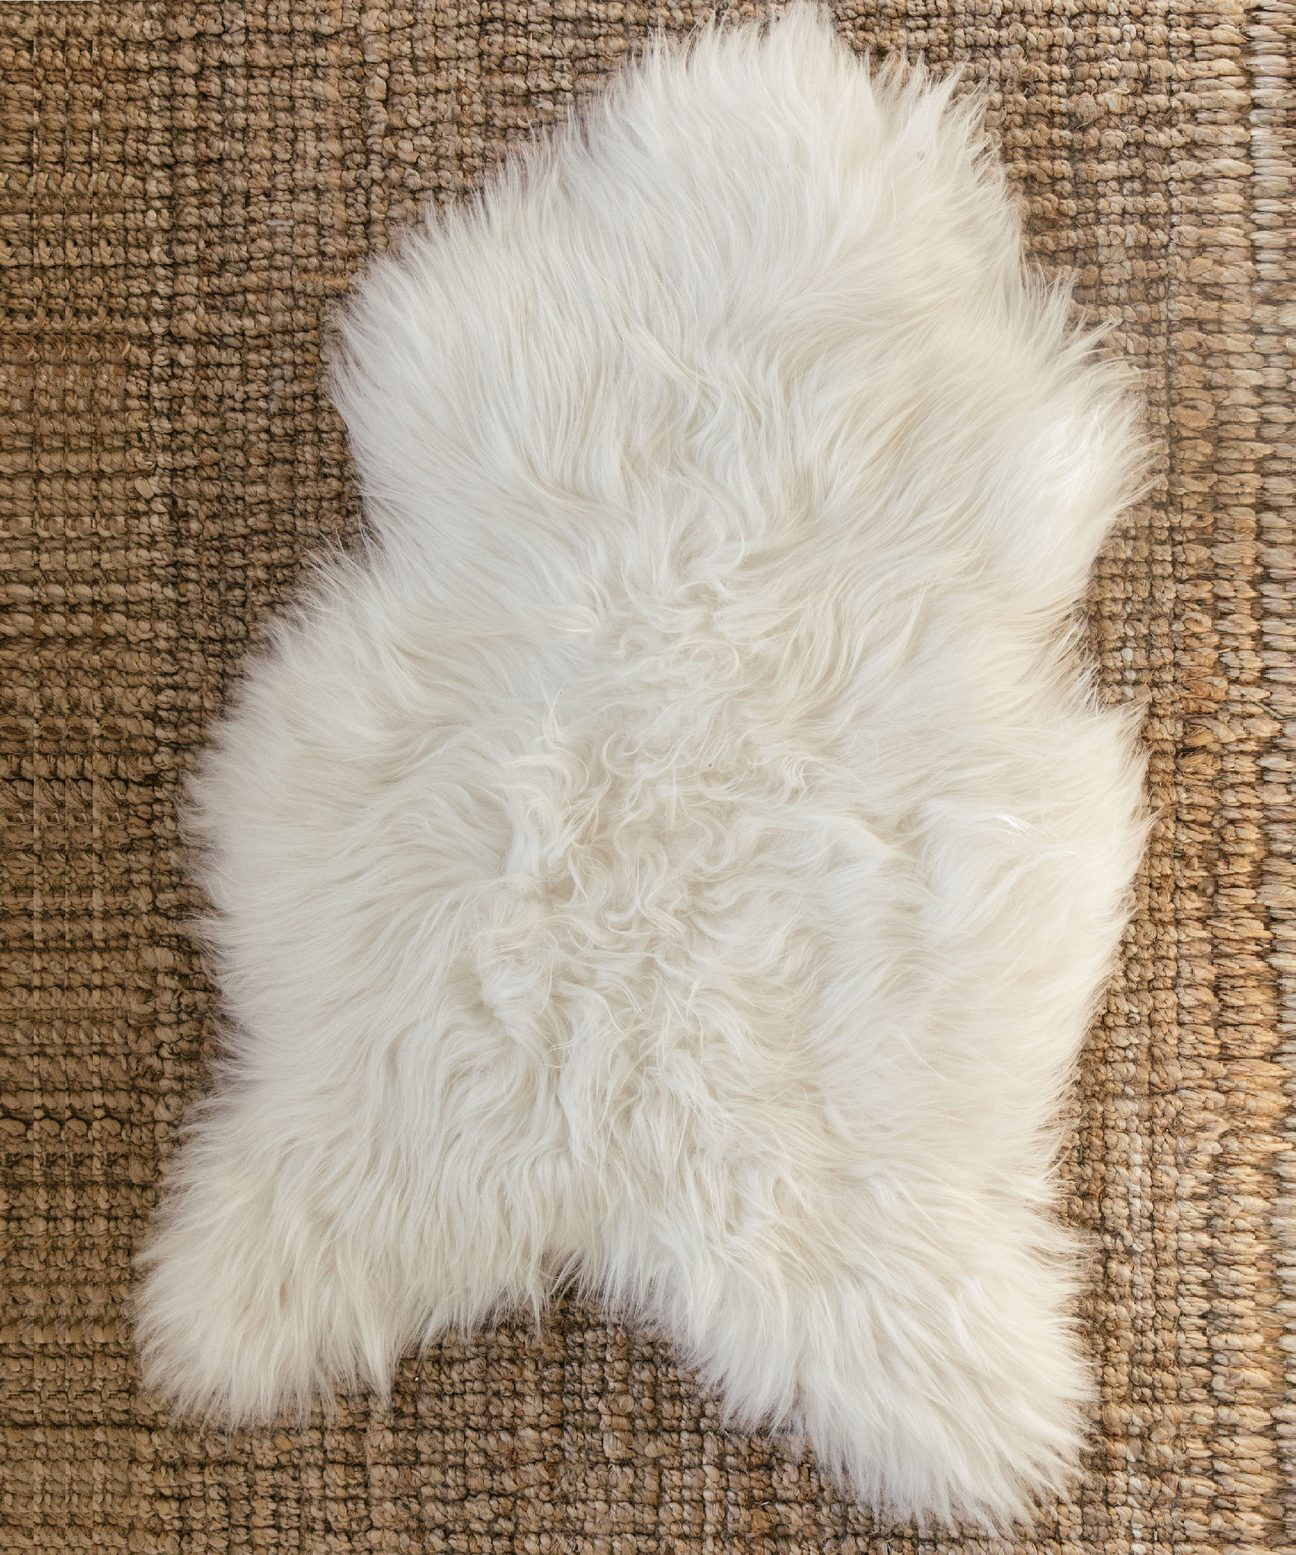 Gift Guide: Gifts for the Snow Bunny - Sheepskin Throw | Rhyme & Reason